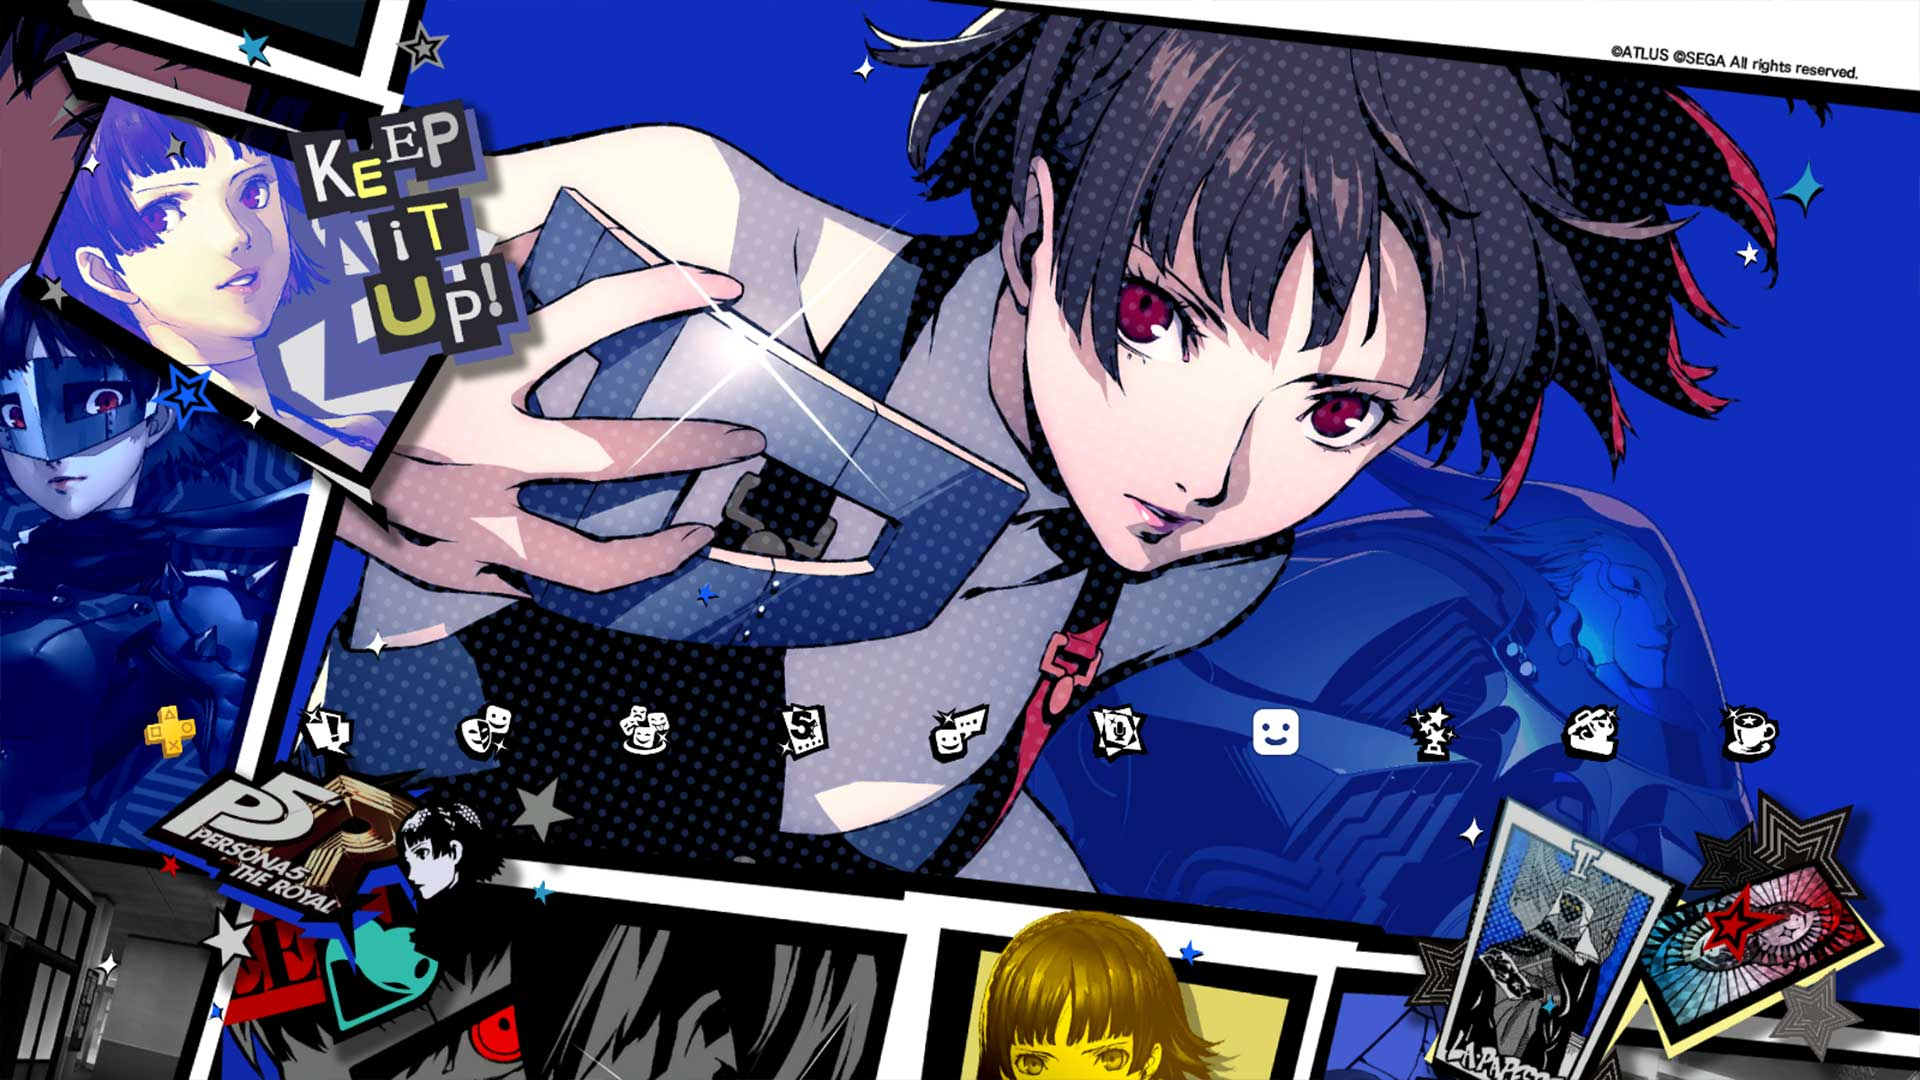 Persona Central On Twitter Preview Images Of The Persona 5 Royal Themes For Yusuke Makoto And Futaba From The Japanese Version Of The Game